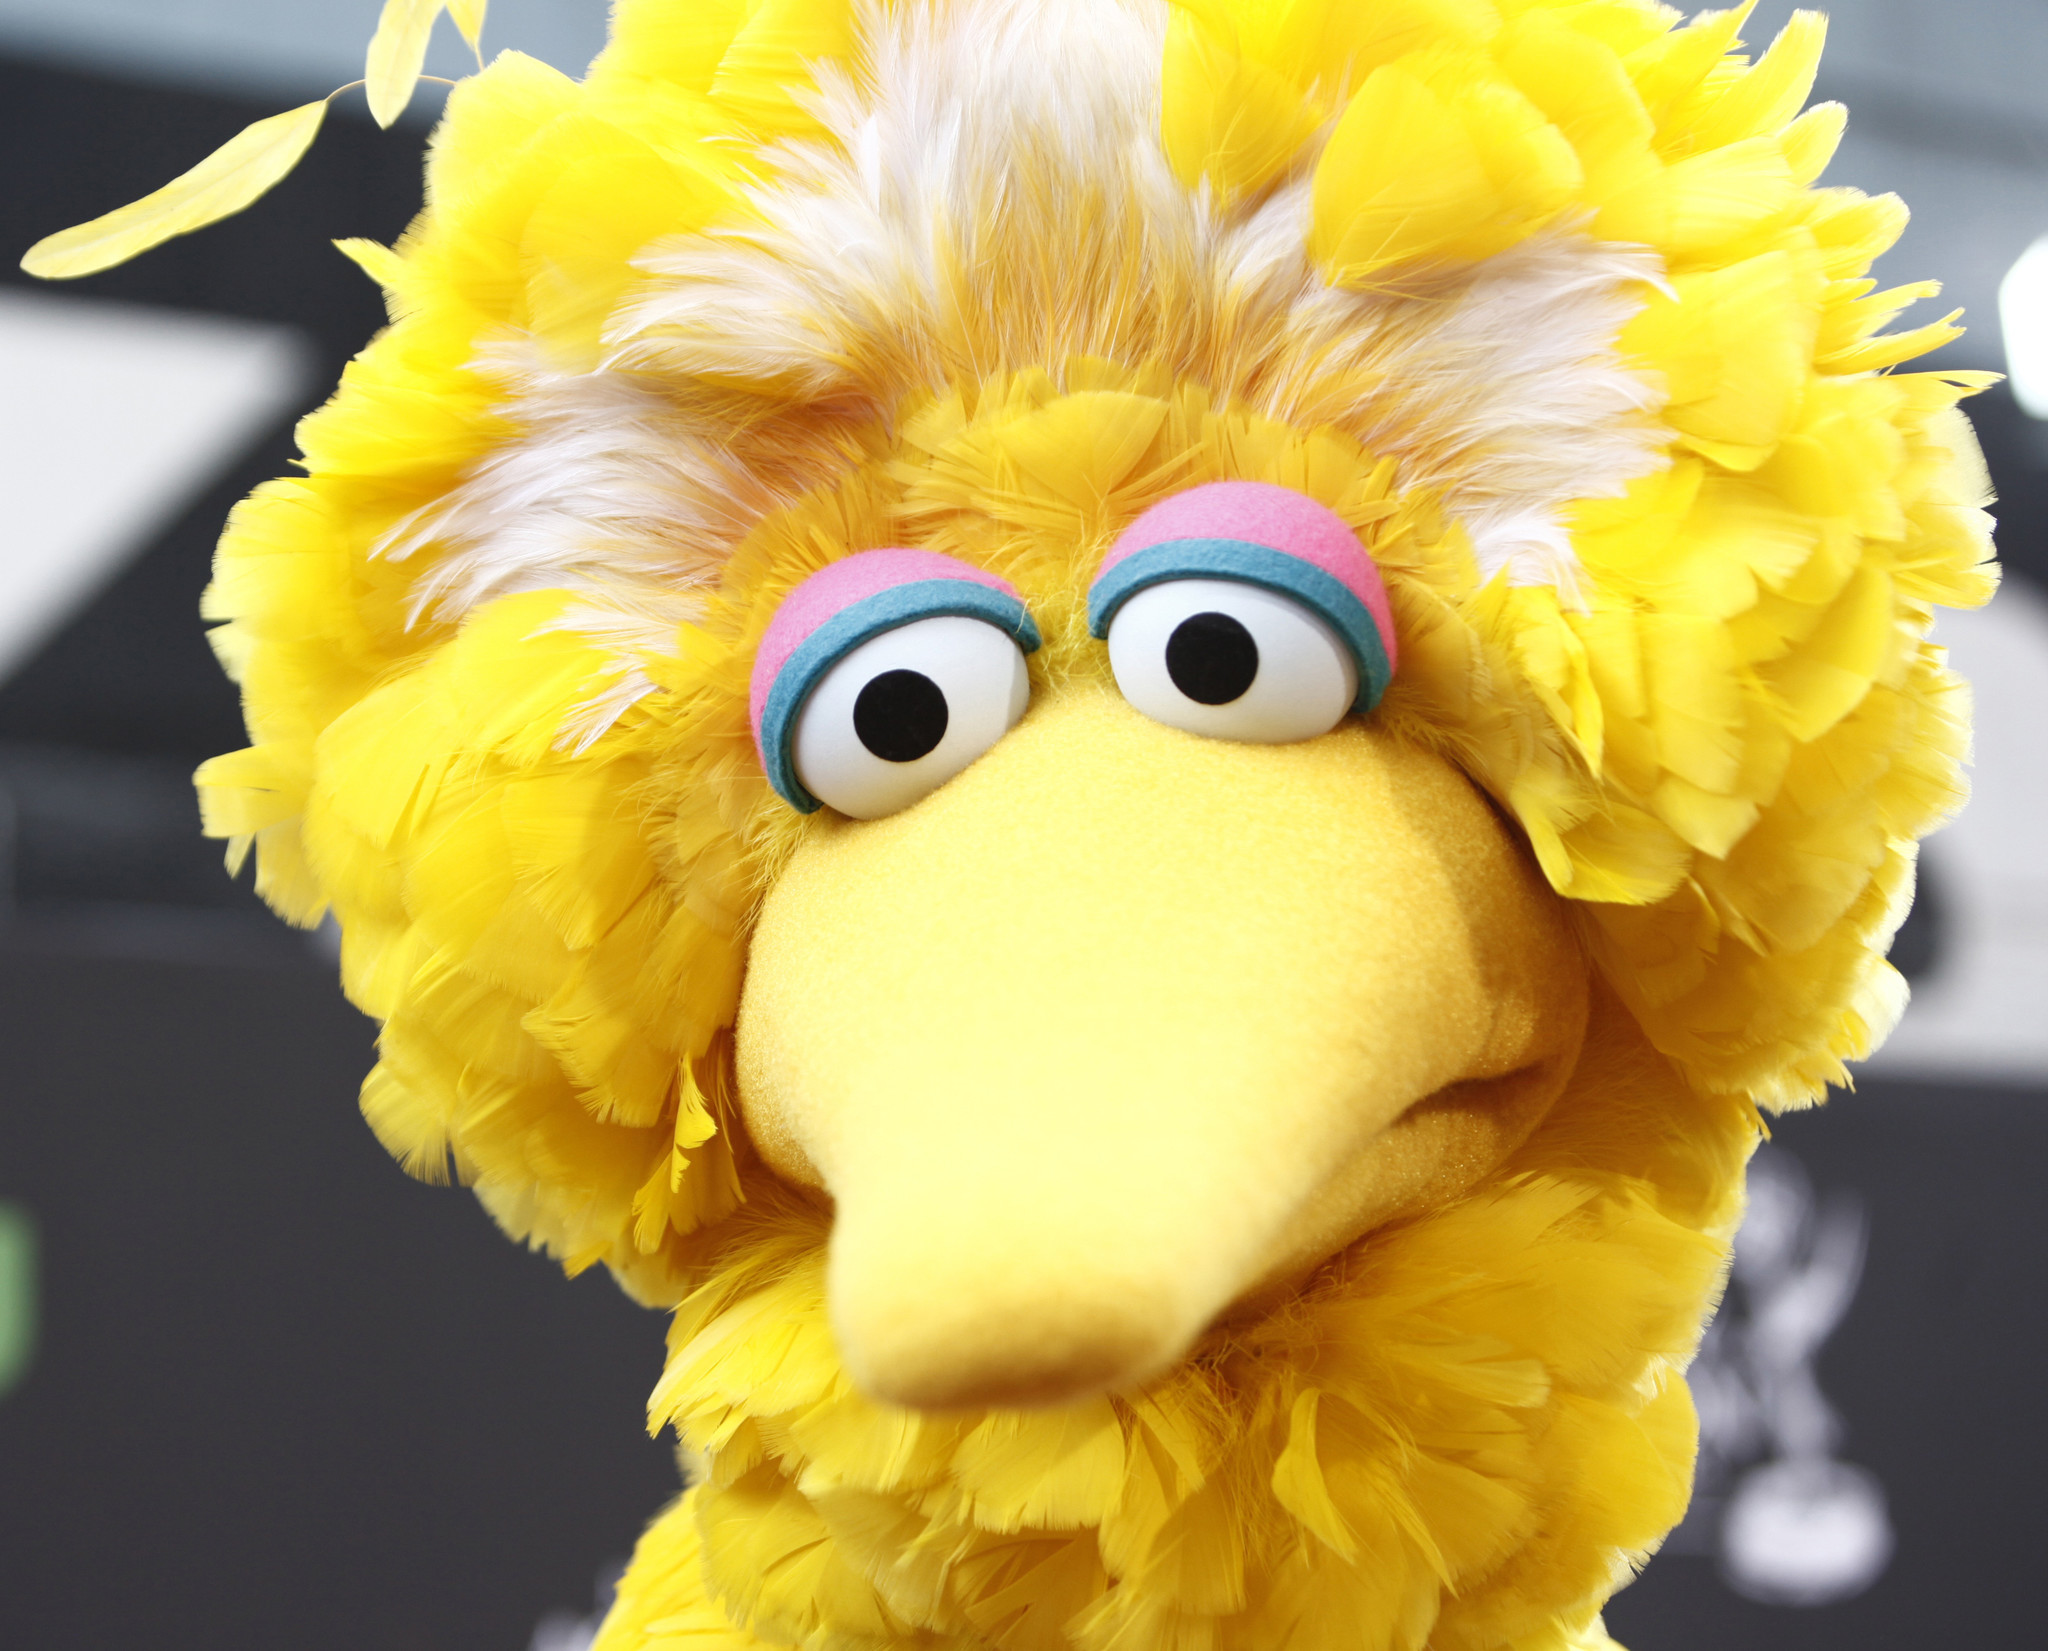 SEE IT: Big Bird hits the streets to celebrate St. Patrick's Day in Ireland